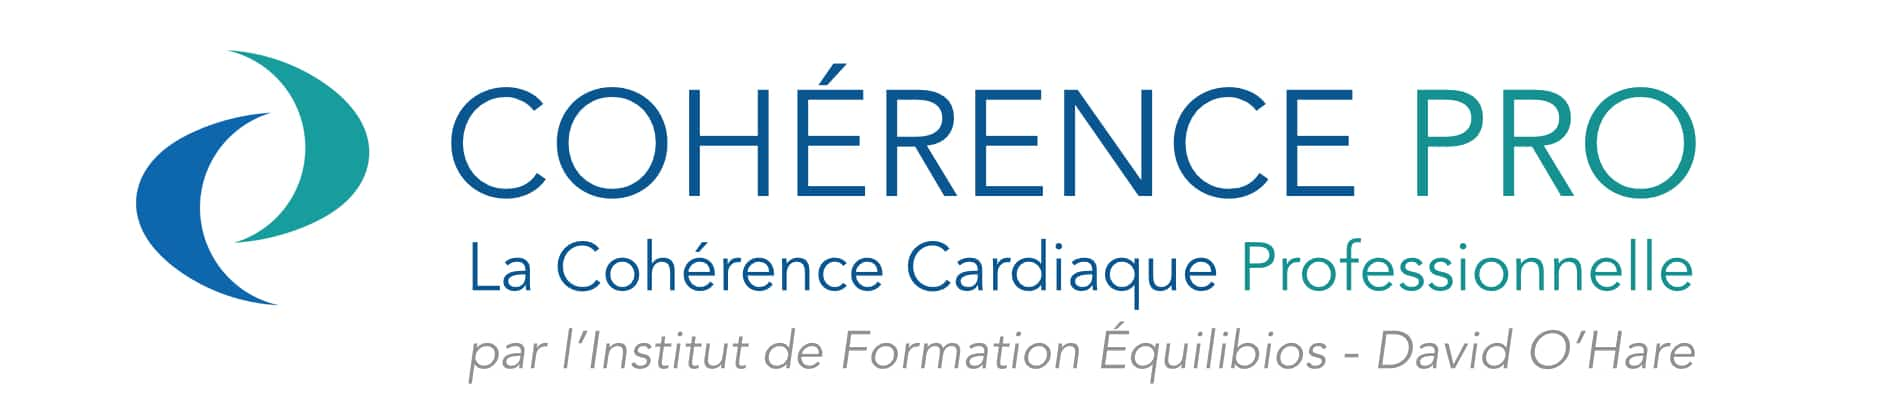 Formation Coherence pro